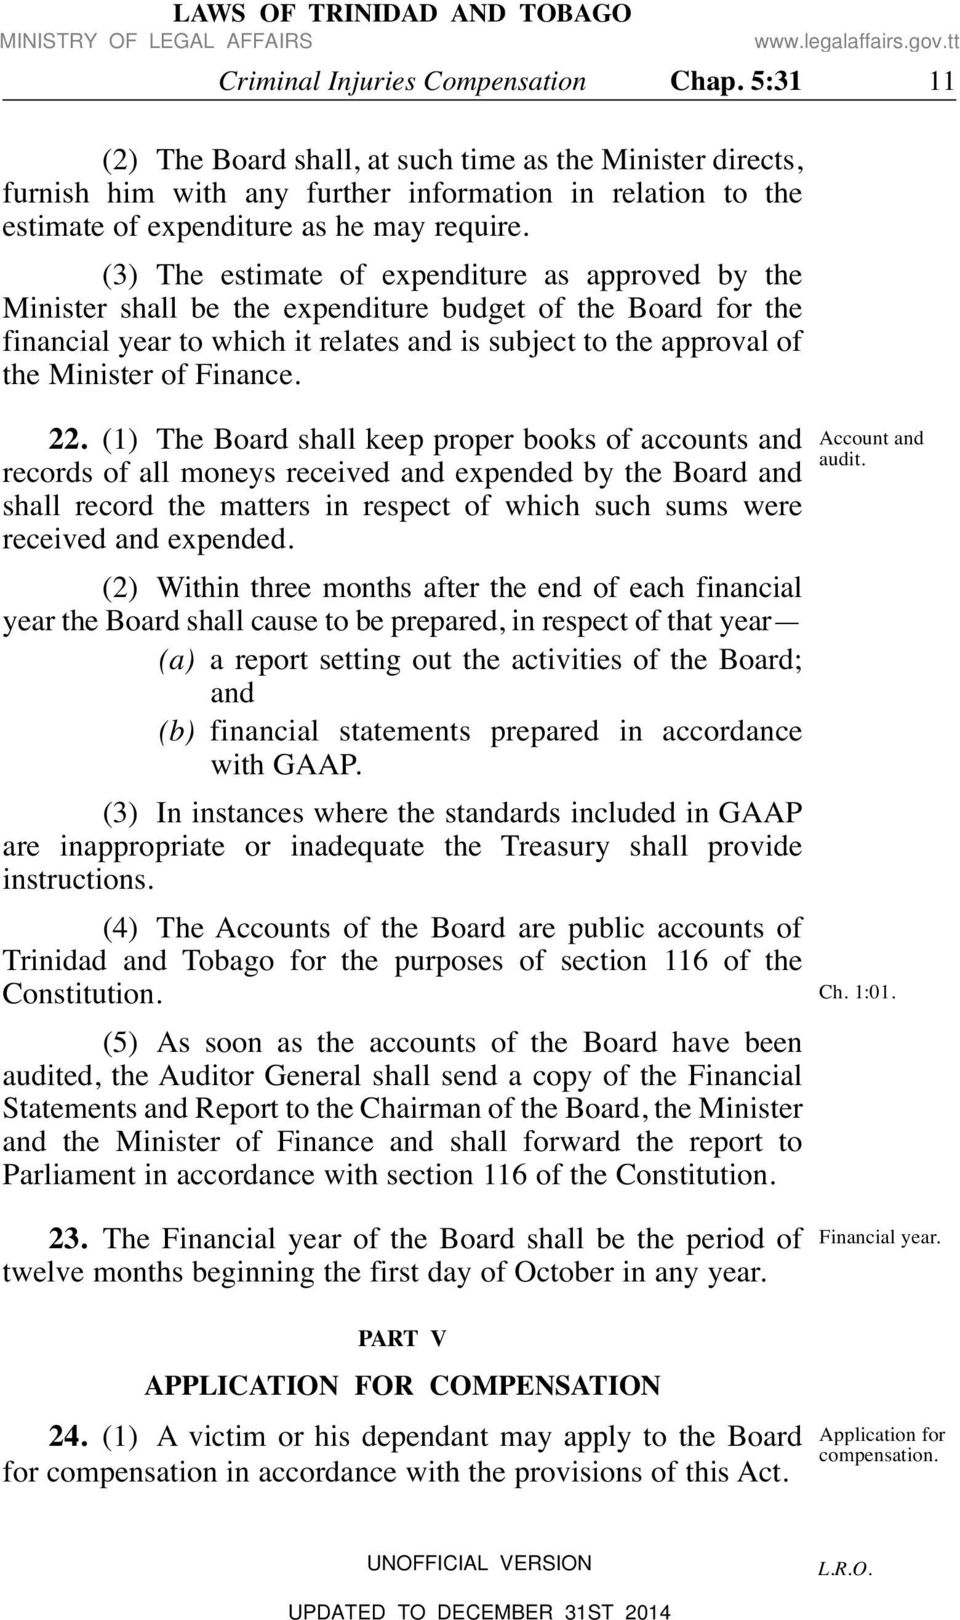 (3) The estimate of expenditure as approved by the Minister shall be the expenditure budget of the Board for the financial year to which it relates and is subject to the approval of the Minister of